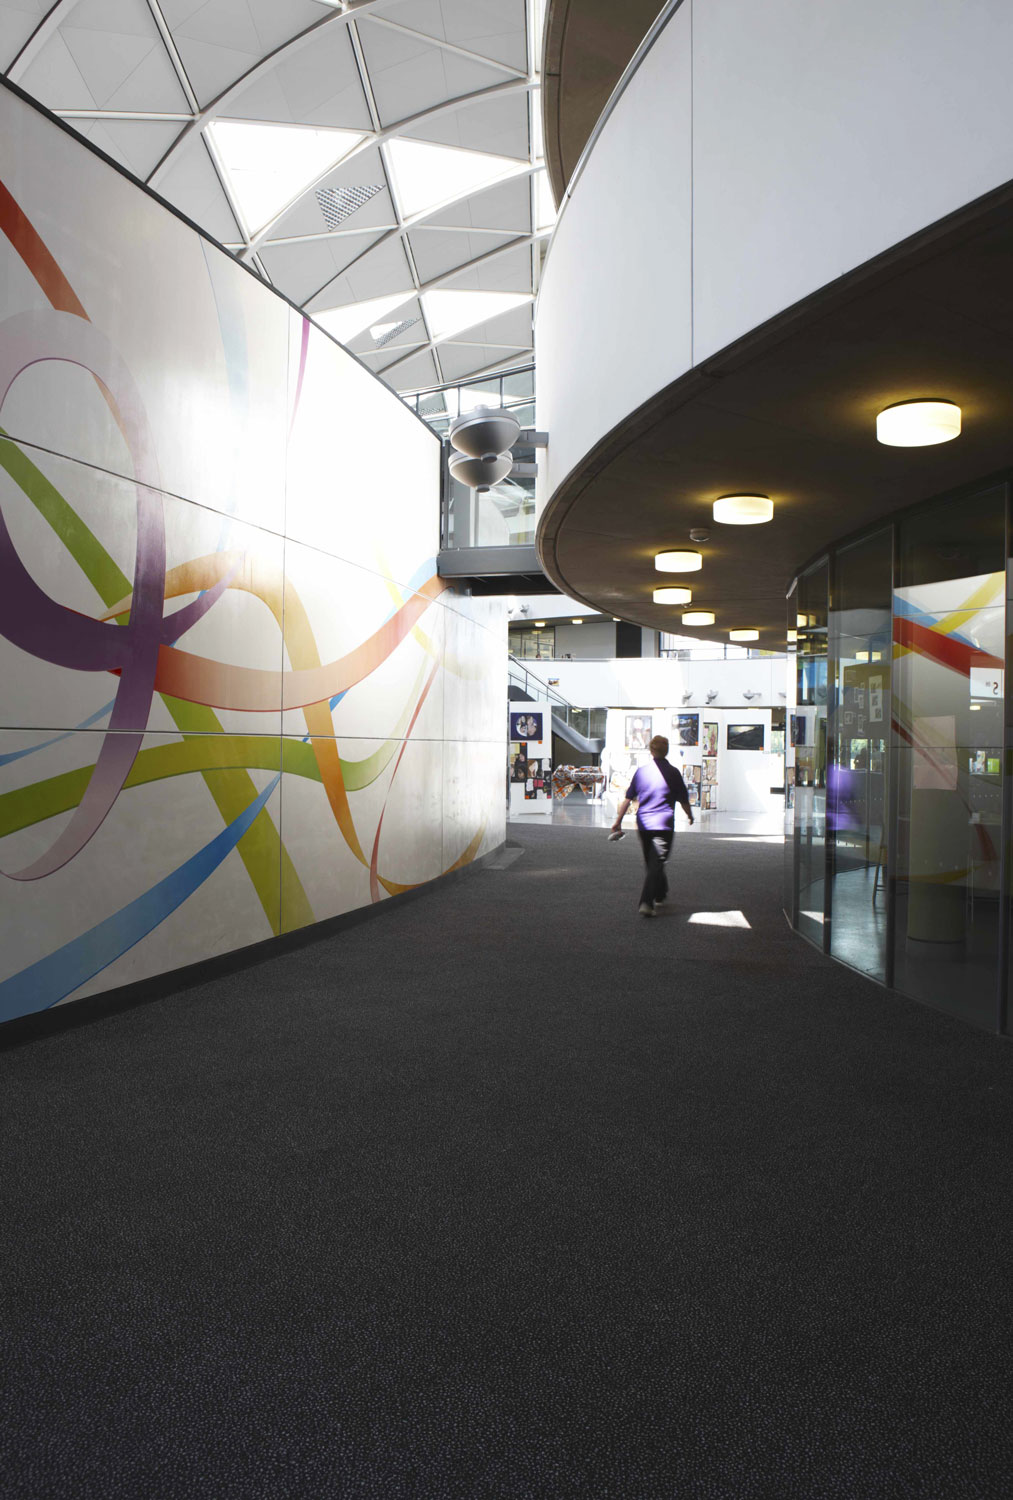 Thomas Deacon Academy curved lecture theatre, Peterborough | Interior Photographers